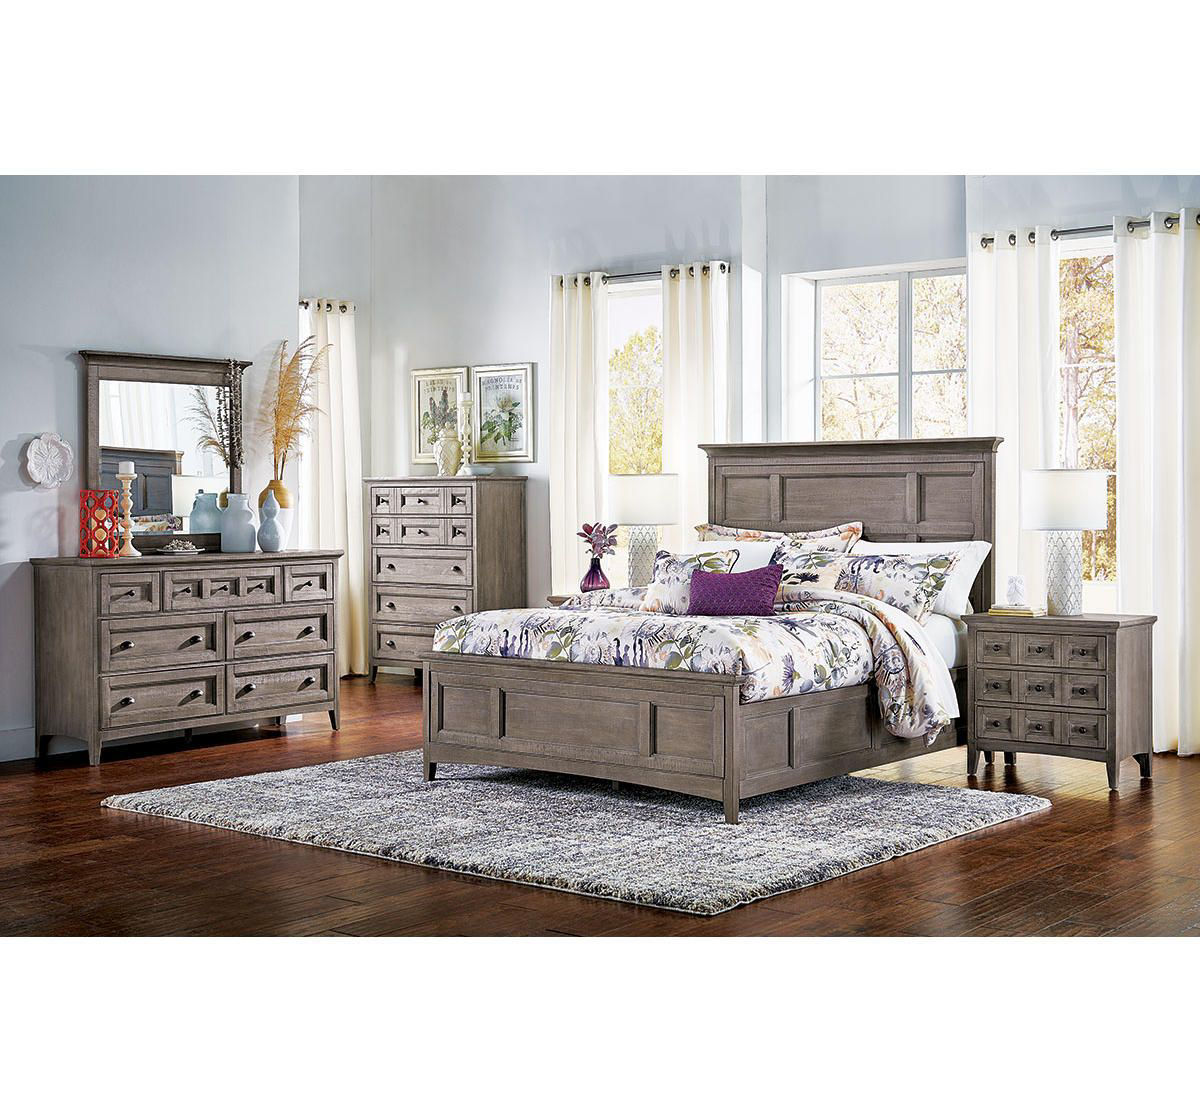 Keaton 5 Pc Bedroom Group Badcock Home Furniture More,Picture Frame On Wall Free